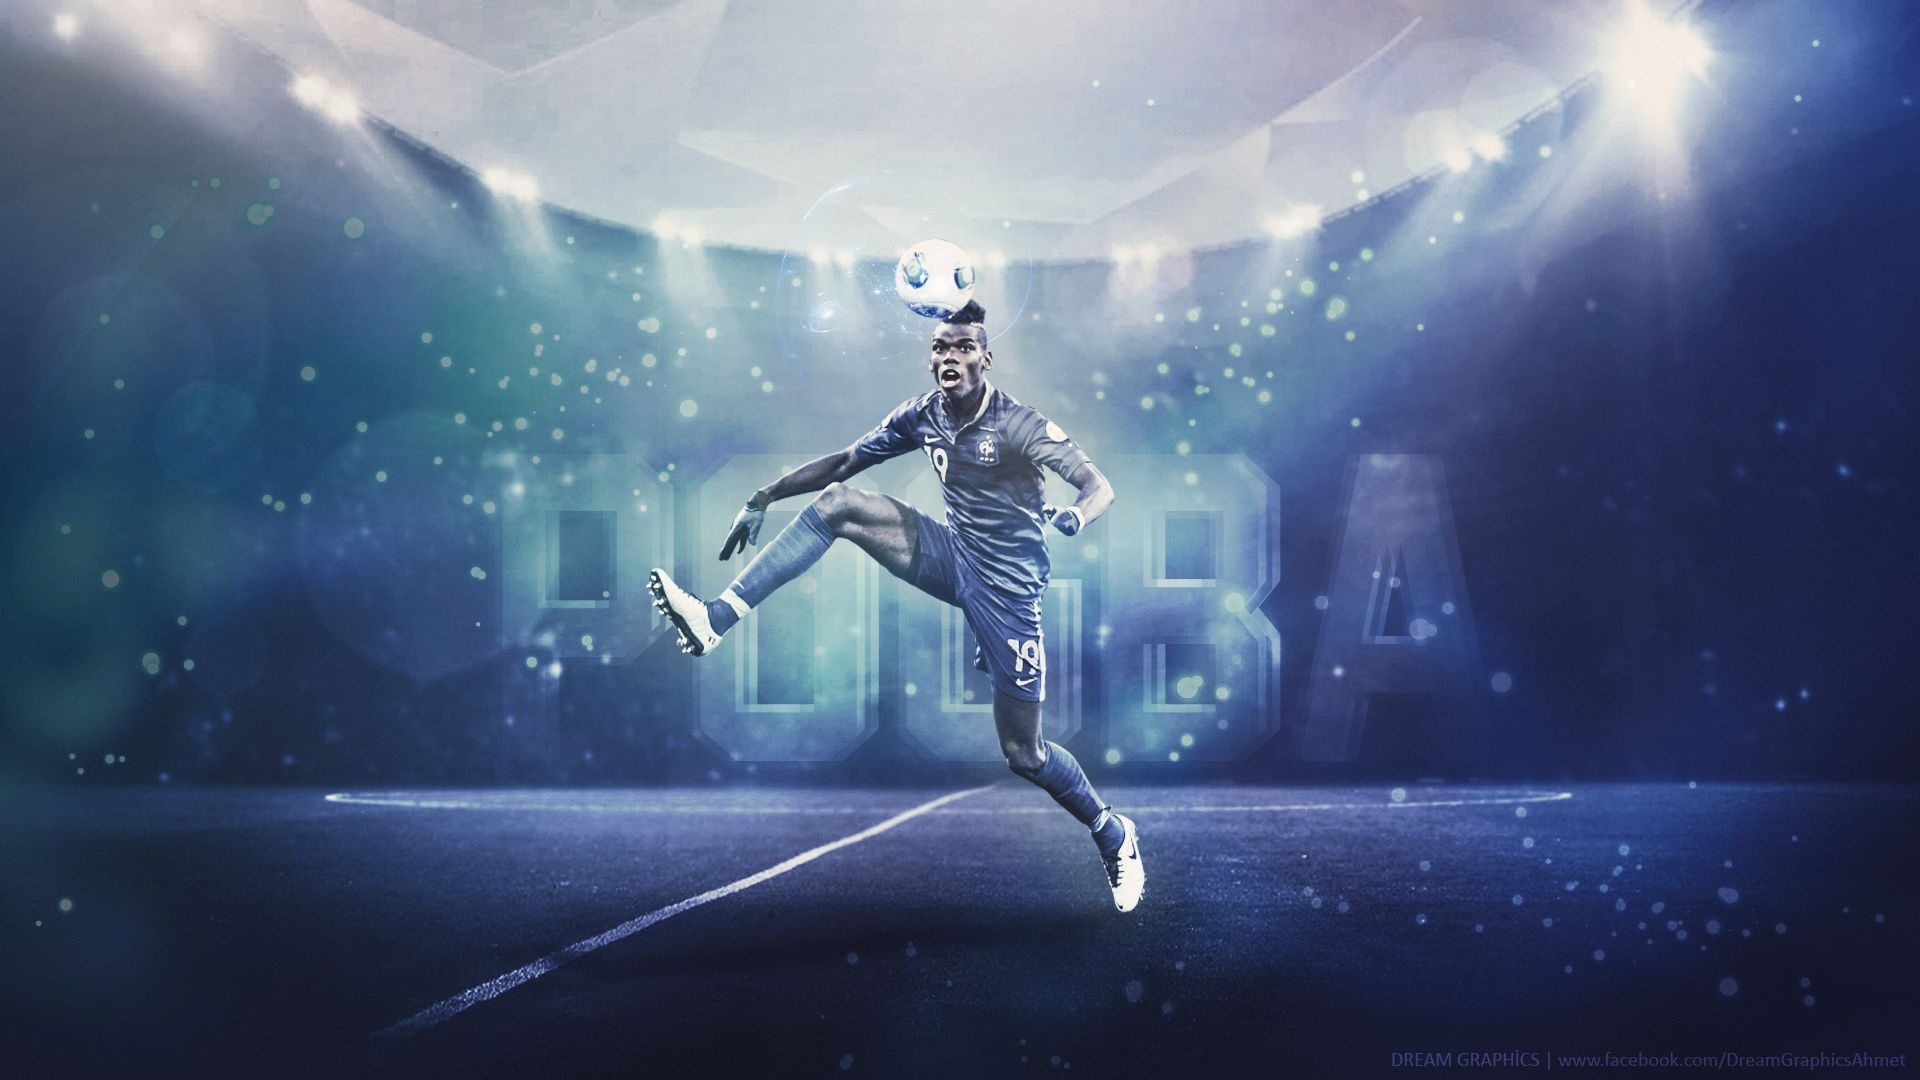 Paul-Pogba-Juventus-Football-Wallpapers-HD.jpeg (1920×1080